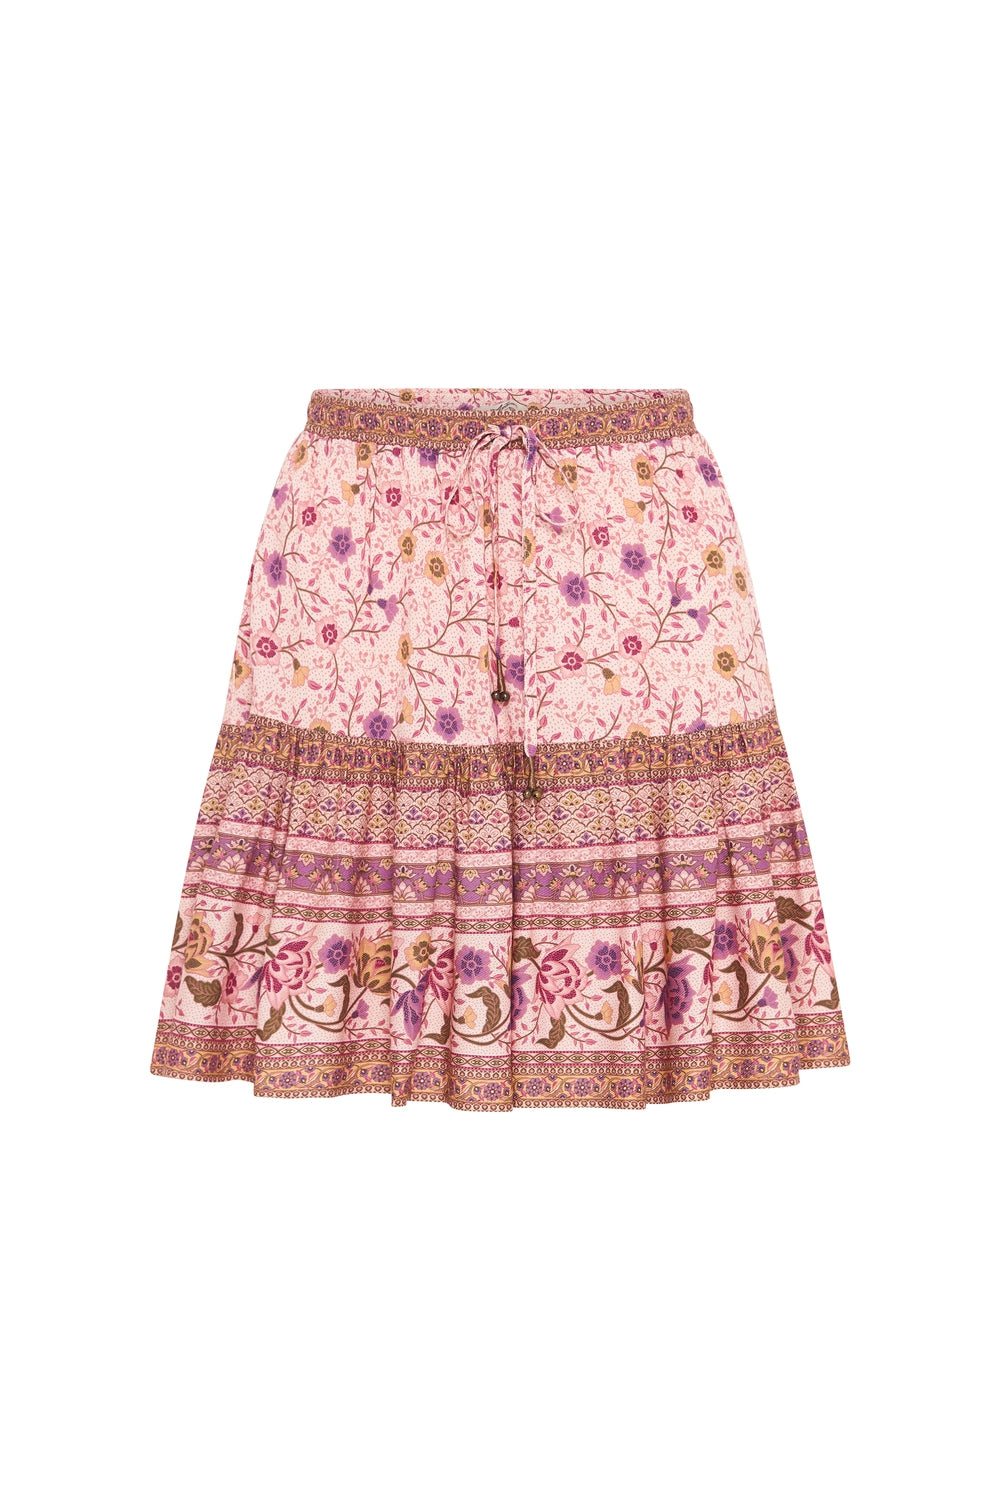 Soleil Mini Skirt in Pink Jasmine